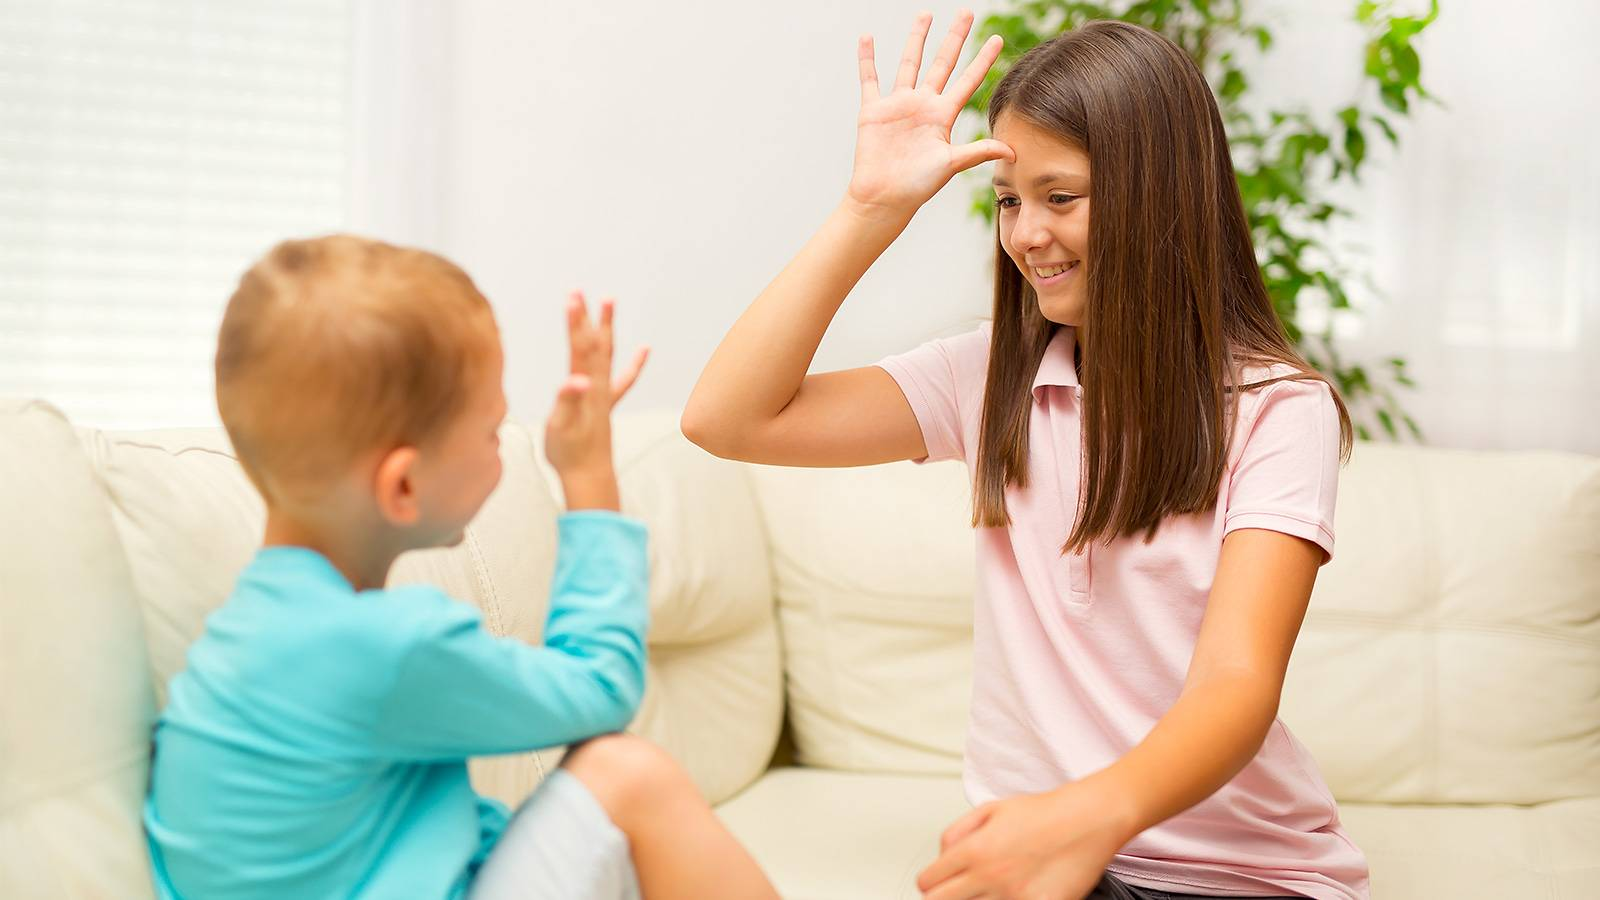 Kids-6-ways-to-talk-to-junior-about-someone's-disabililty-MAIN